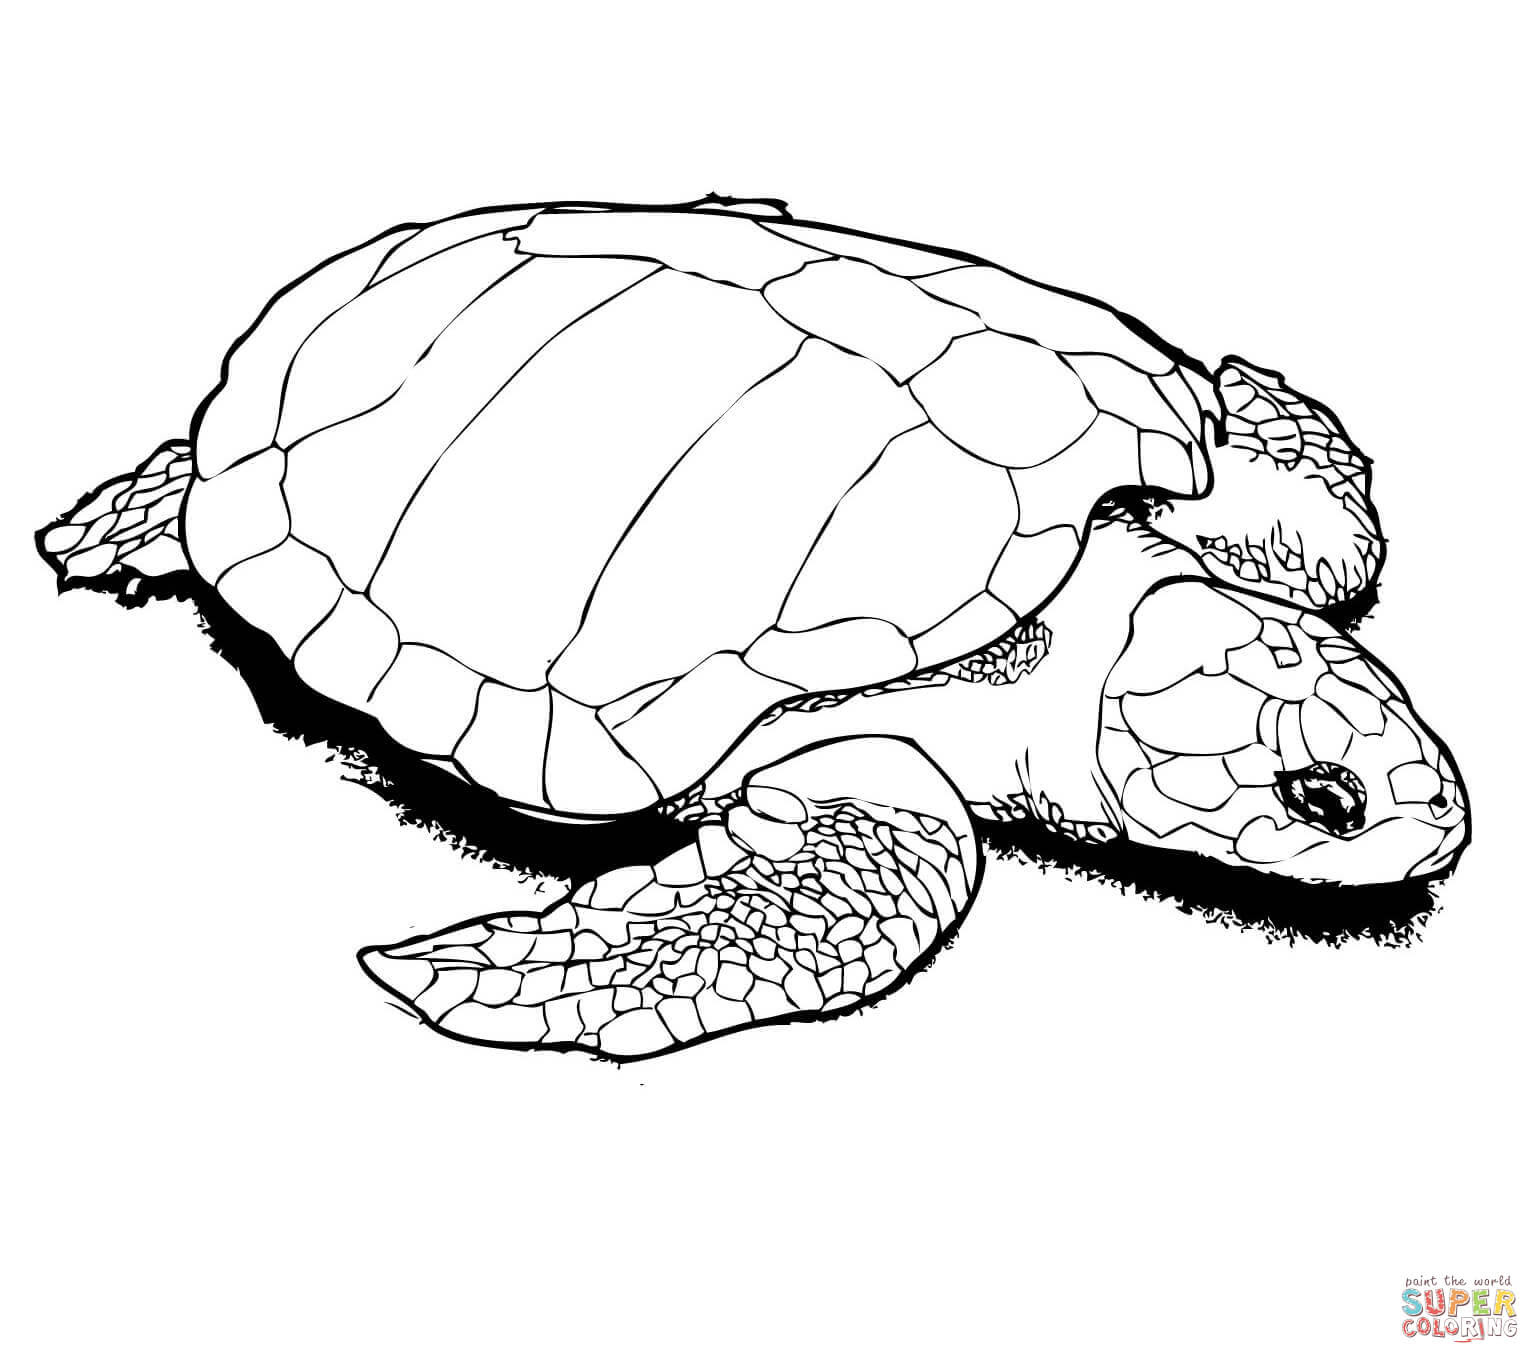 850 Coloring Pages For Adults Turtle Download Free Images